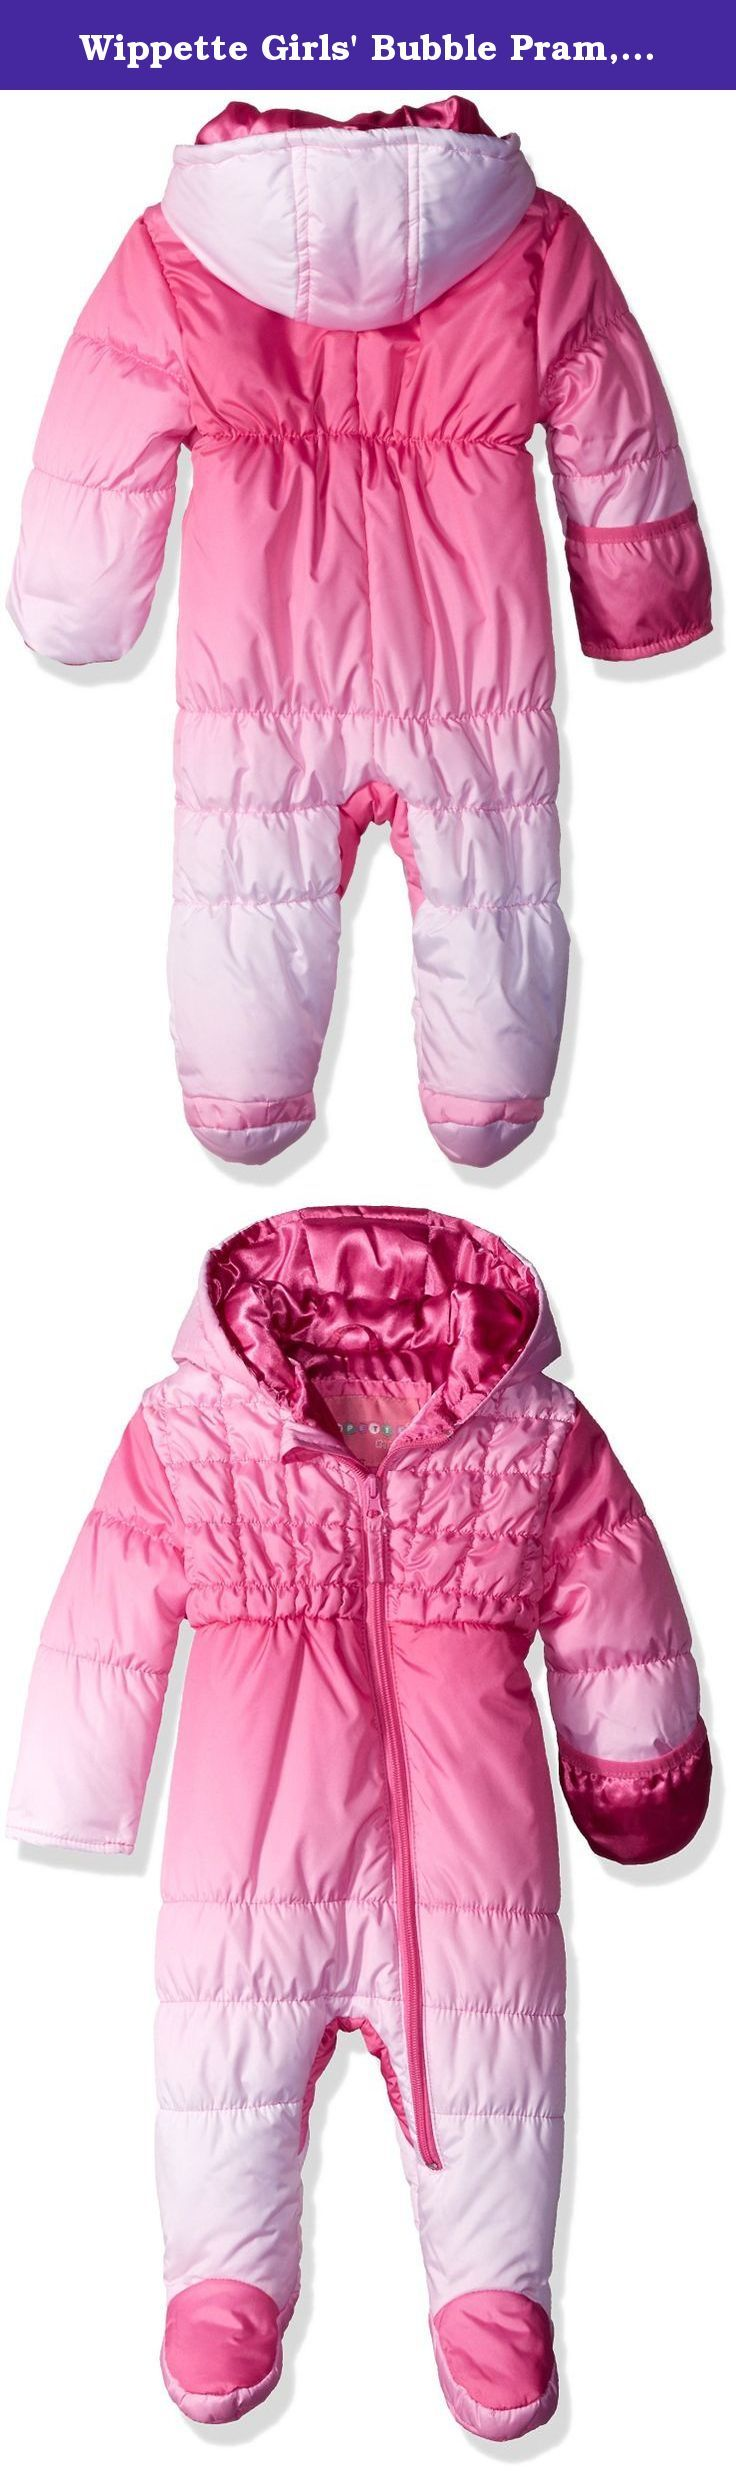 Wippette Girls' Bubble Pram, Pink, 12 Months. Wippette baby girls dip dye bubble quilted snowsuit.